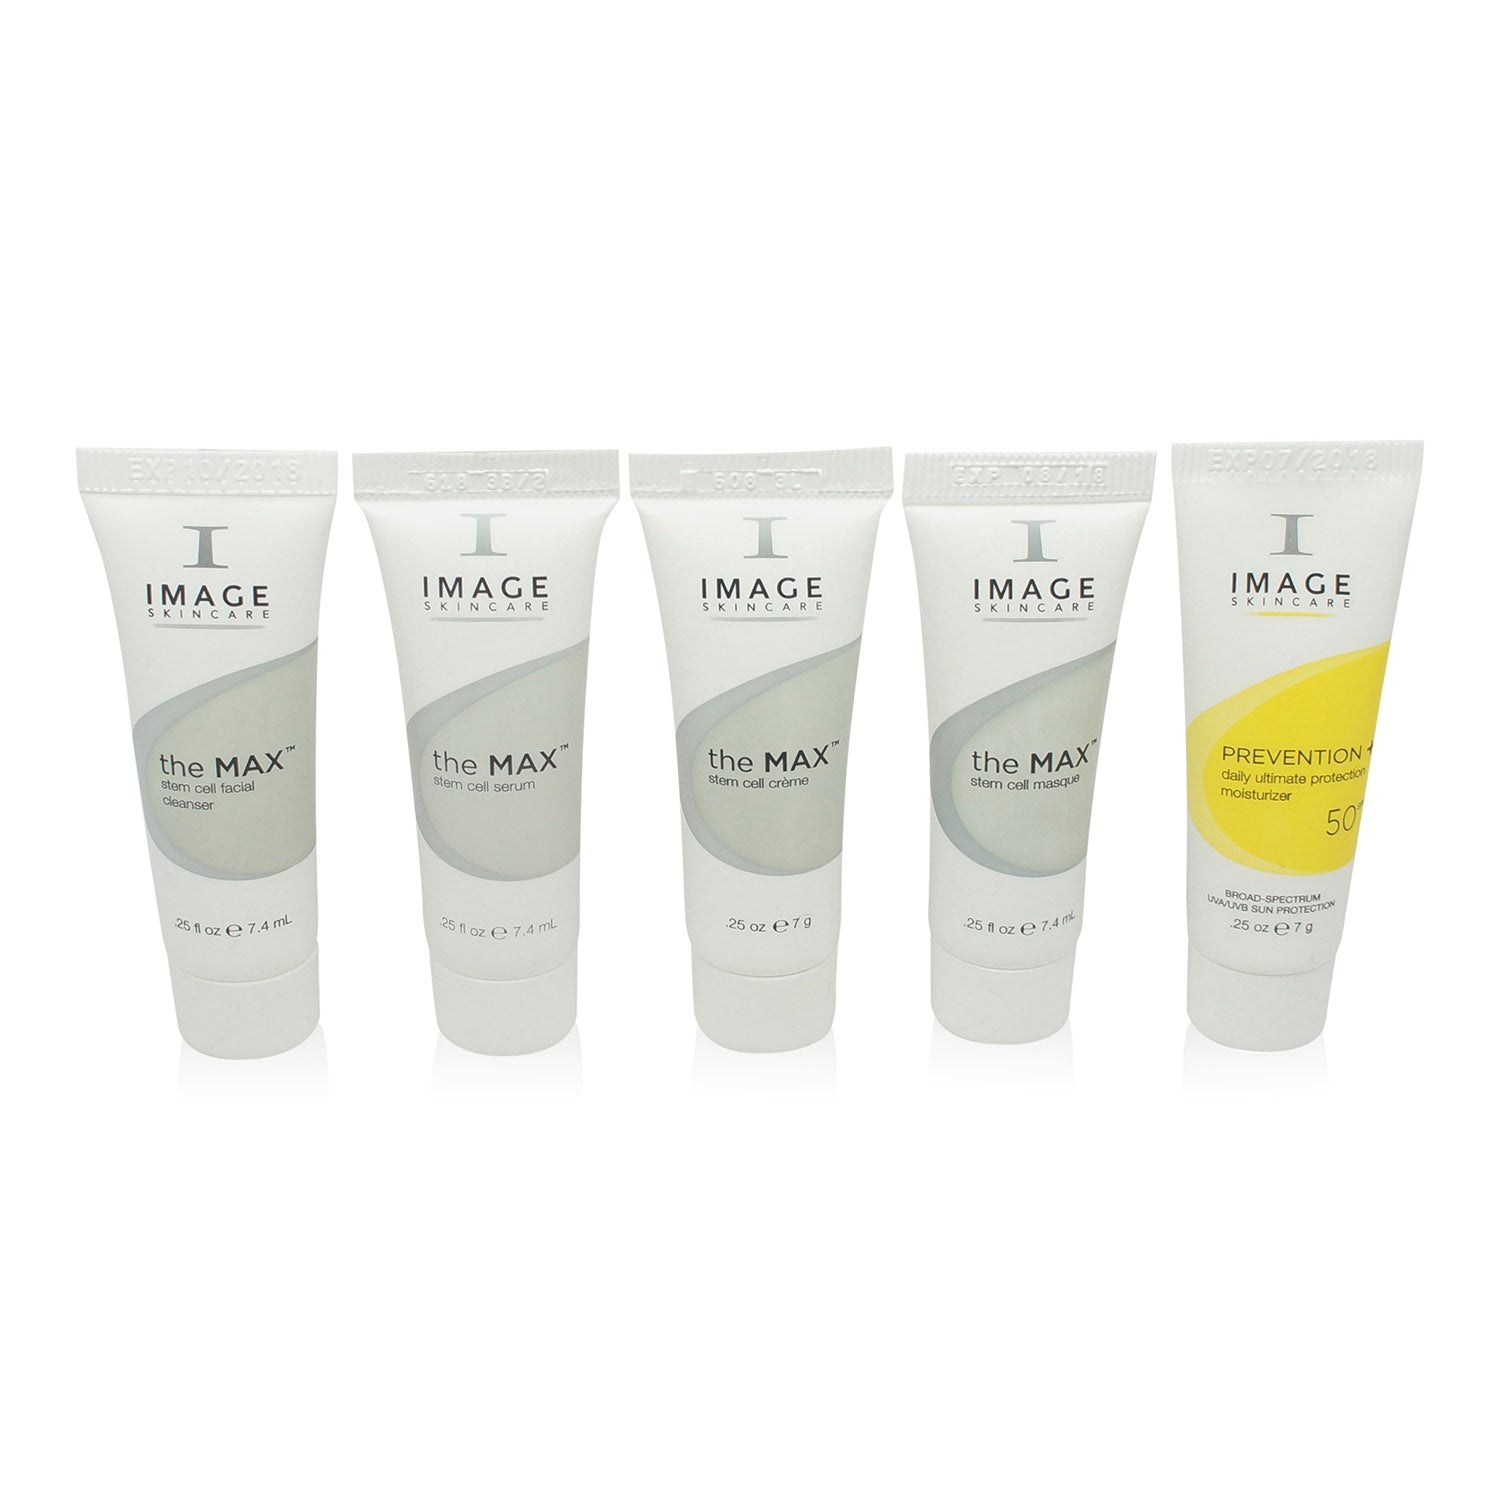 Image Skincare- The MAX Trial Travel Kit to Correct Prevent Nurture…